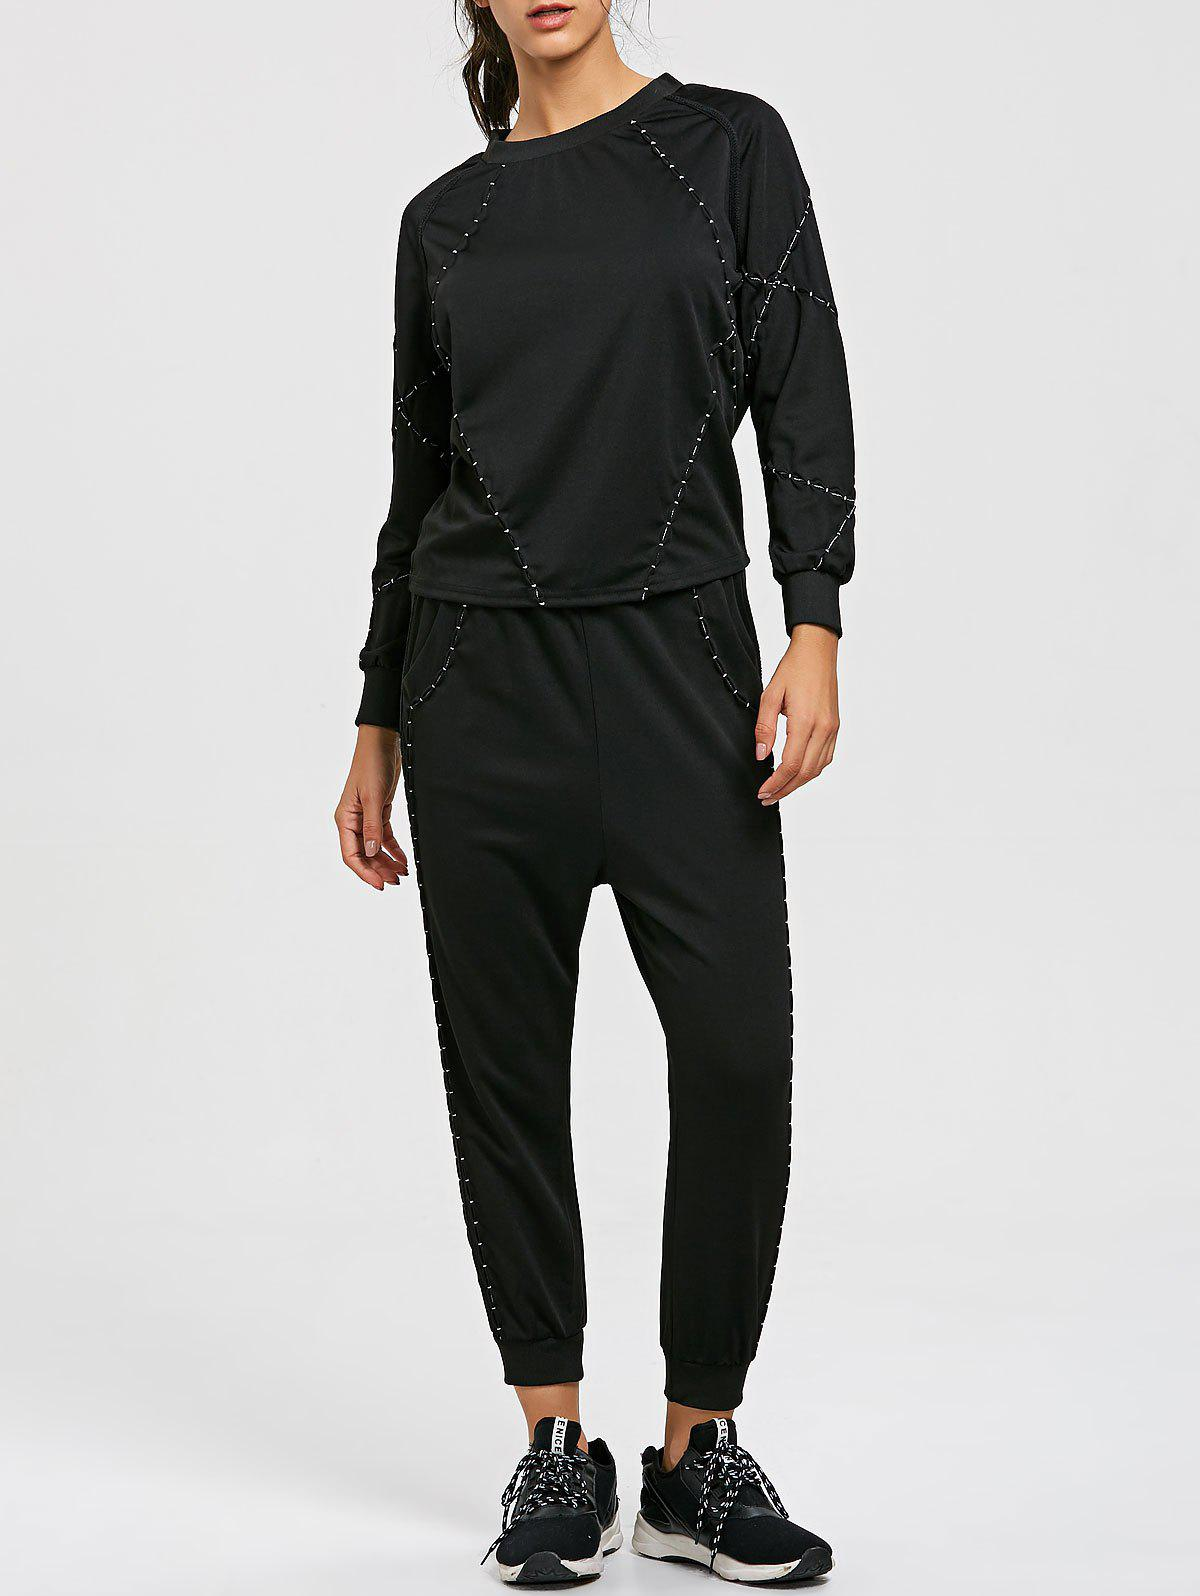 Raglan Sleeve Sweatshirt with Drawstring Jogger Pants Suit - BLACK XL